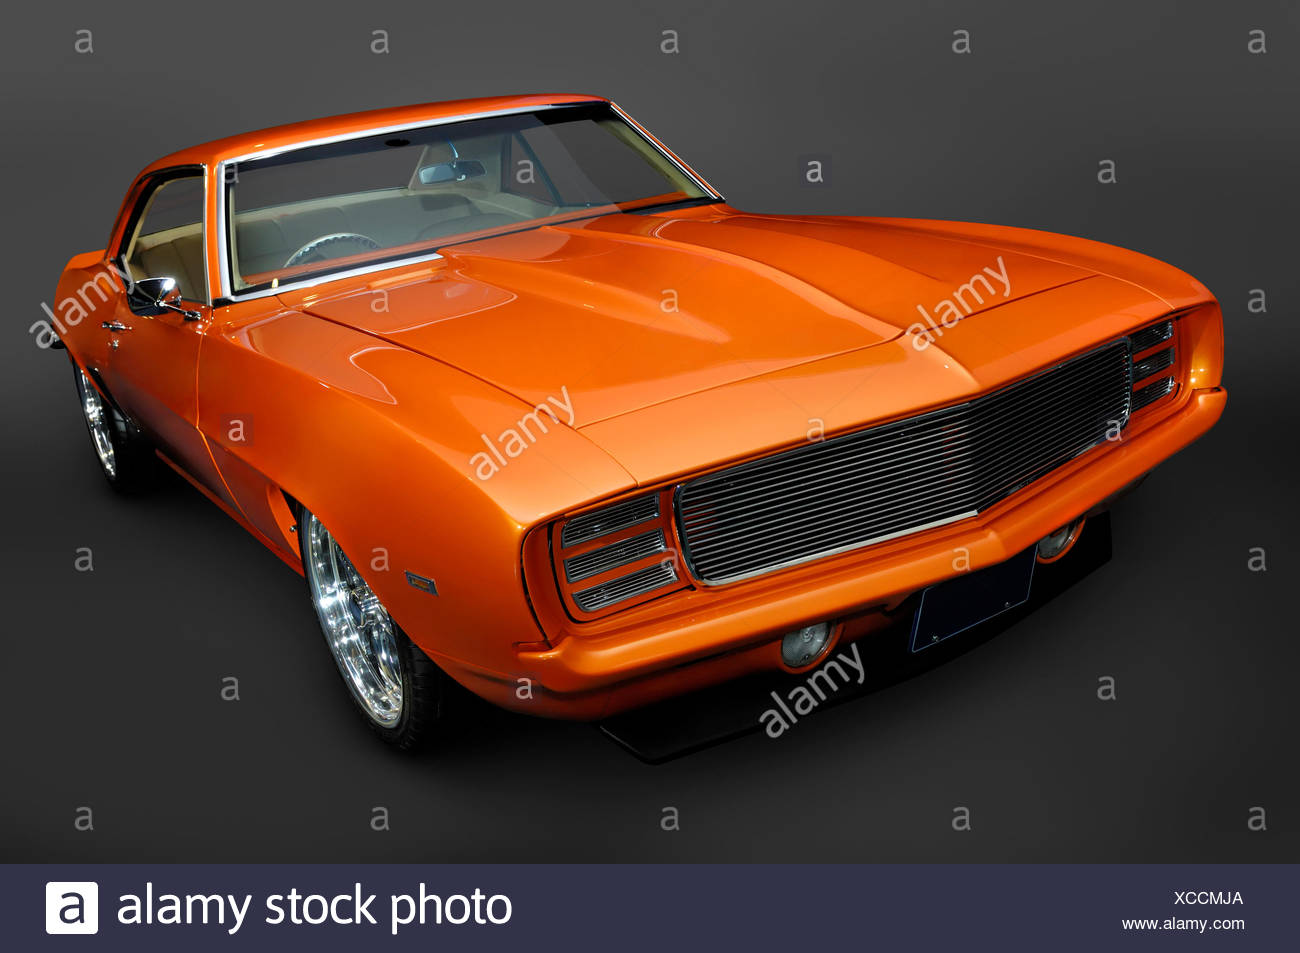 Camaro Stock Photos Images Alamy 1968 Chevrolet Ss Rs Orange 1969 Classic Vintage Muscle Car Image